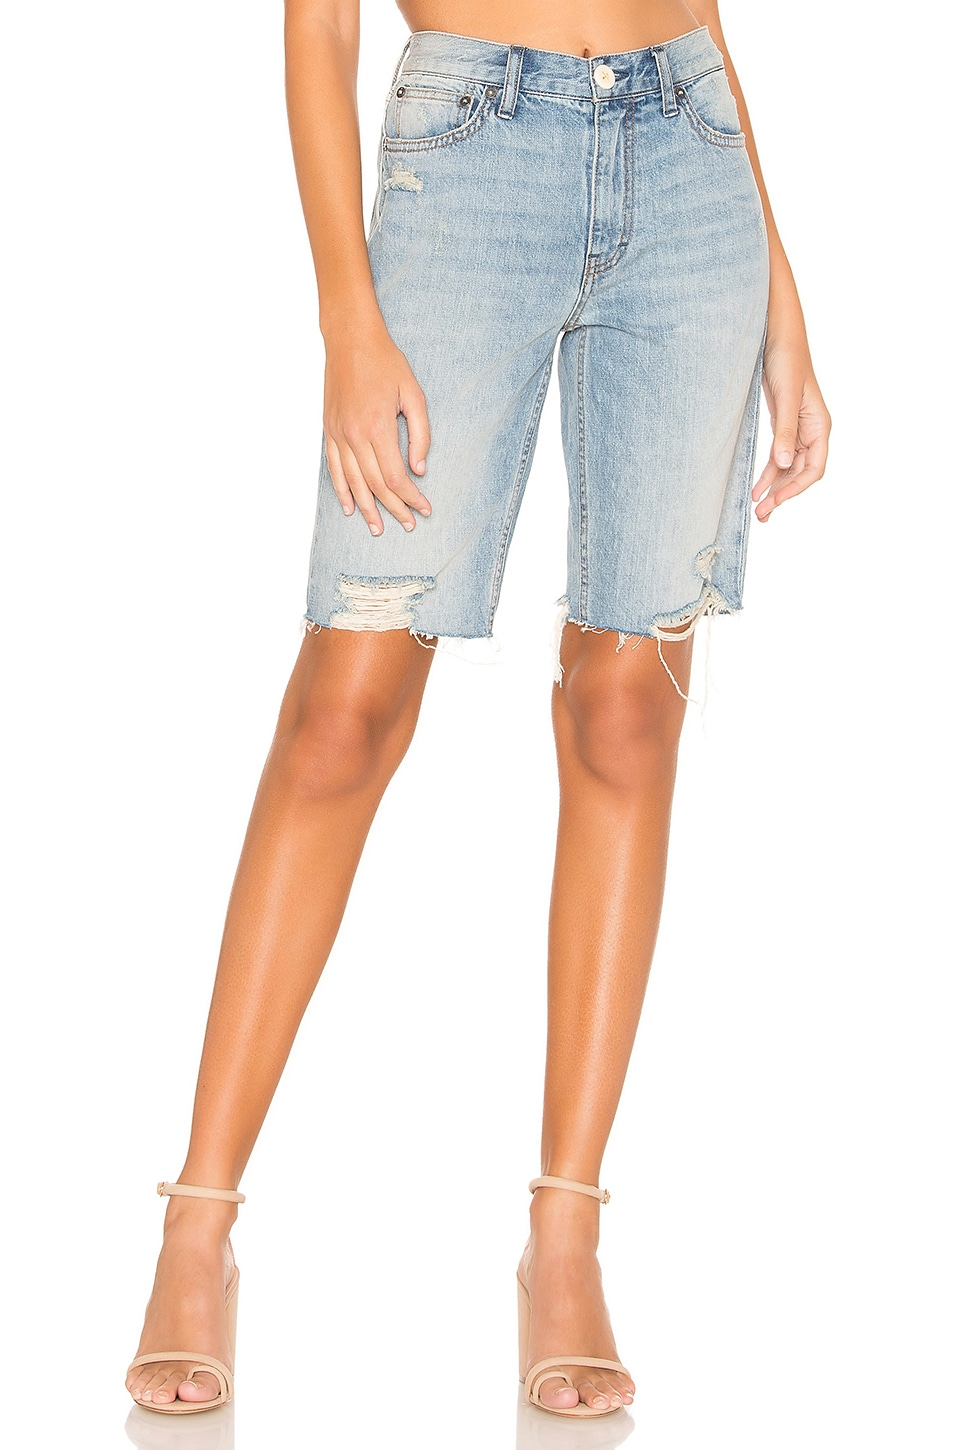 Free People Caroline Cut Off Shorts in Washed Denim